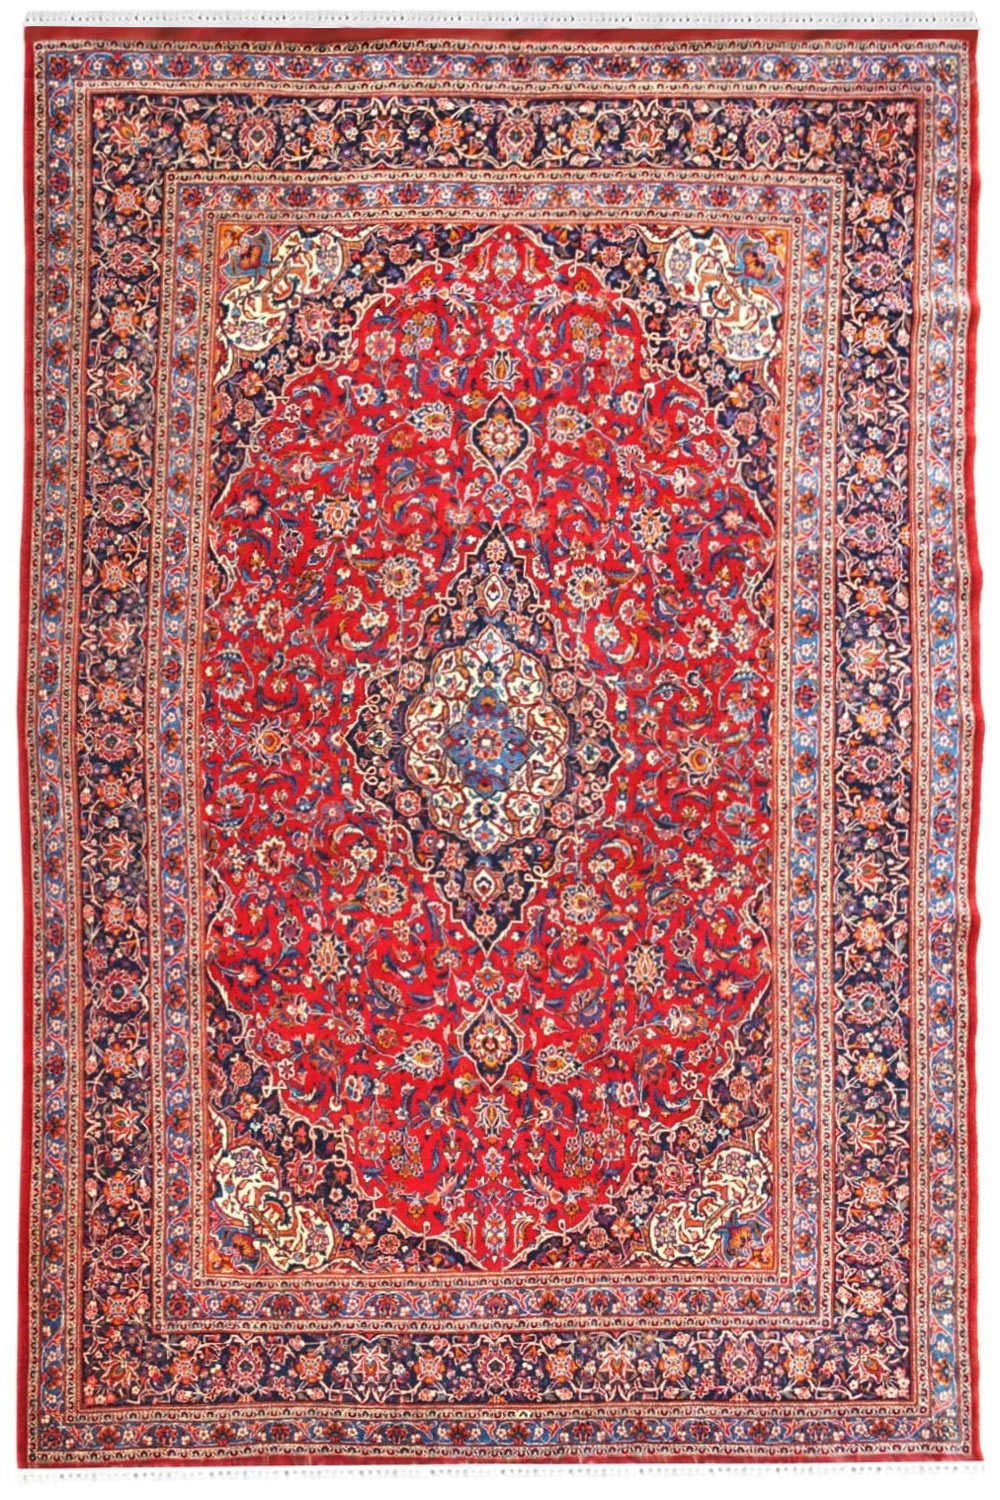 Purchase Pure Laal Kashmiri Wool Handknotted Carpet